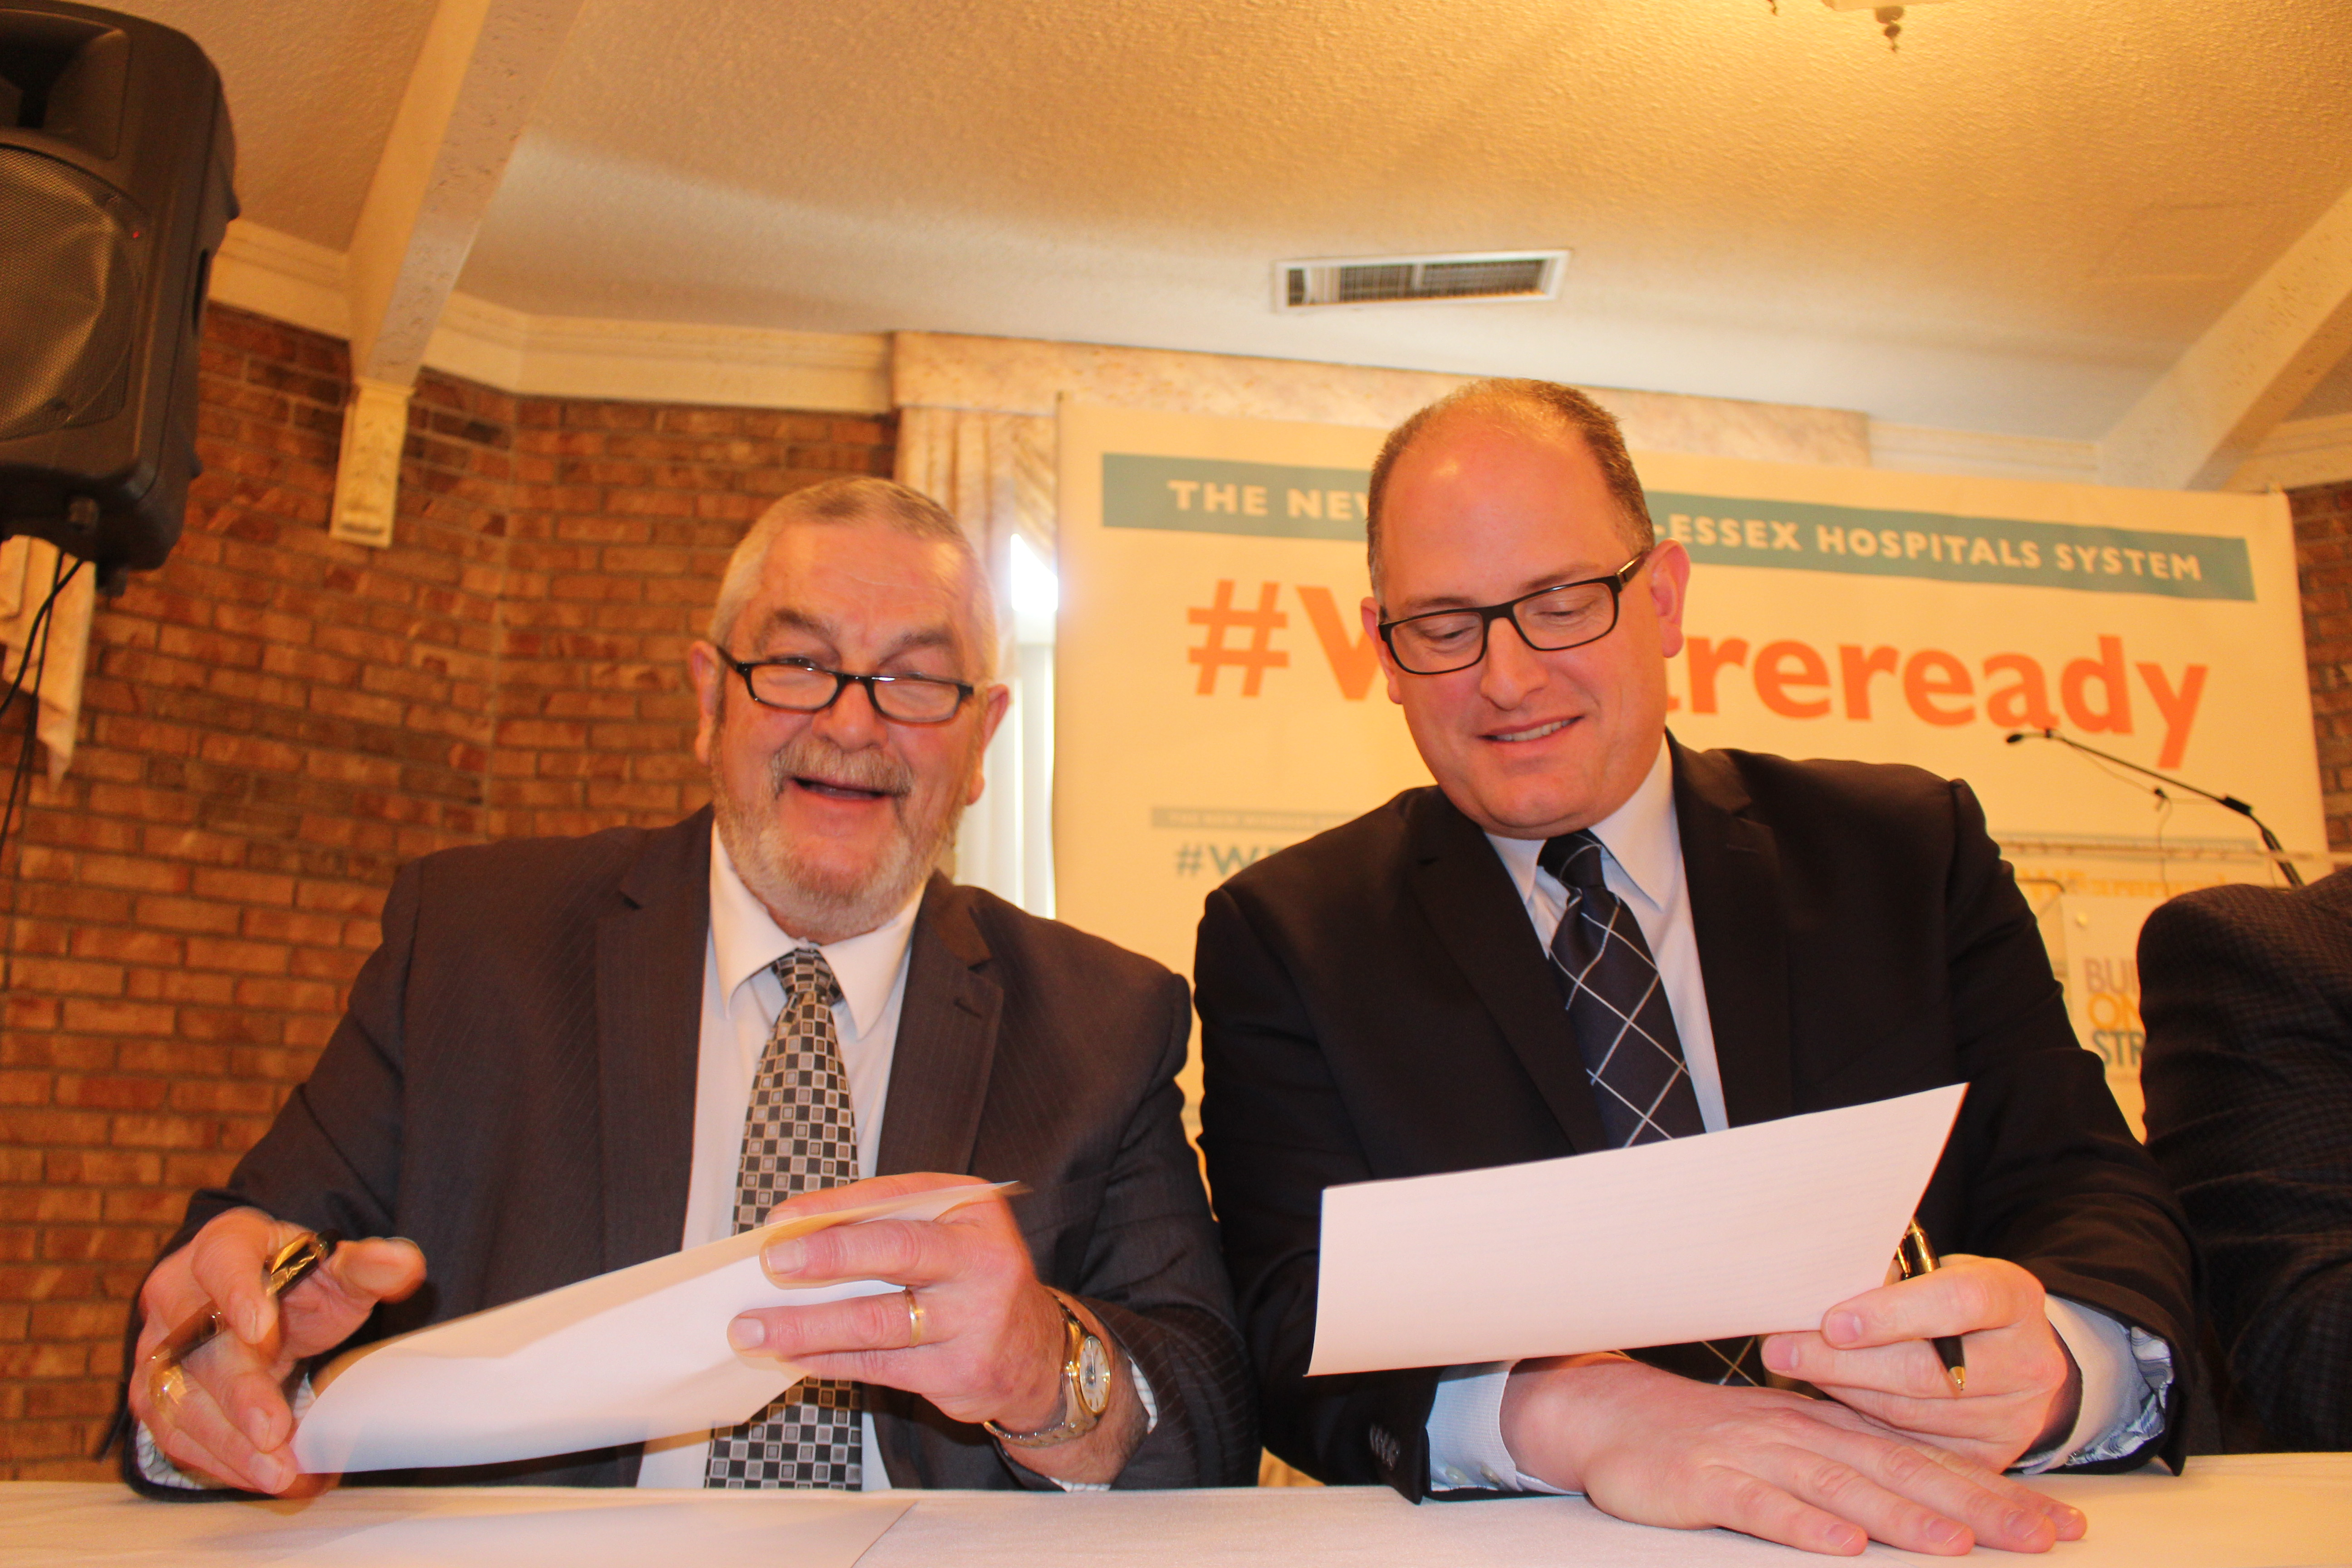 Essex County Warden Tom Bain and Windsor Mayor Drew Dilkens sign a letter to Health Minister Dr. Eric Hoskins January 25, 2016. (Photo by Adelle Loiselle)